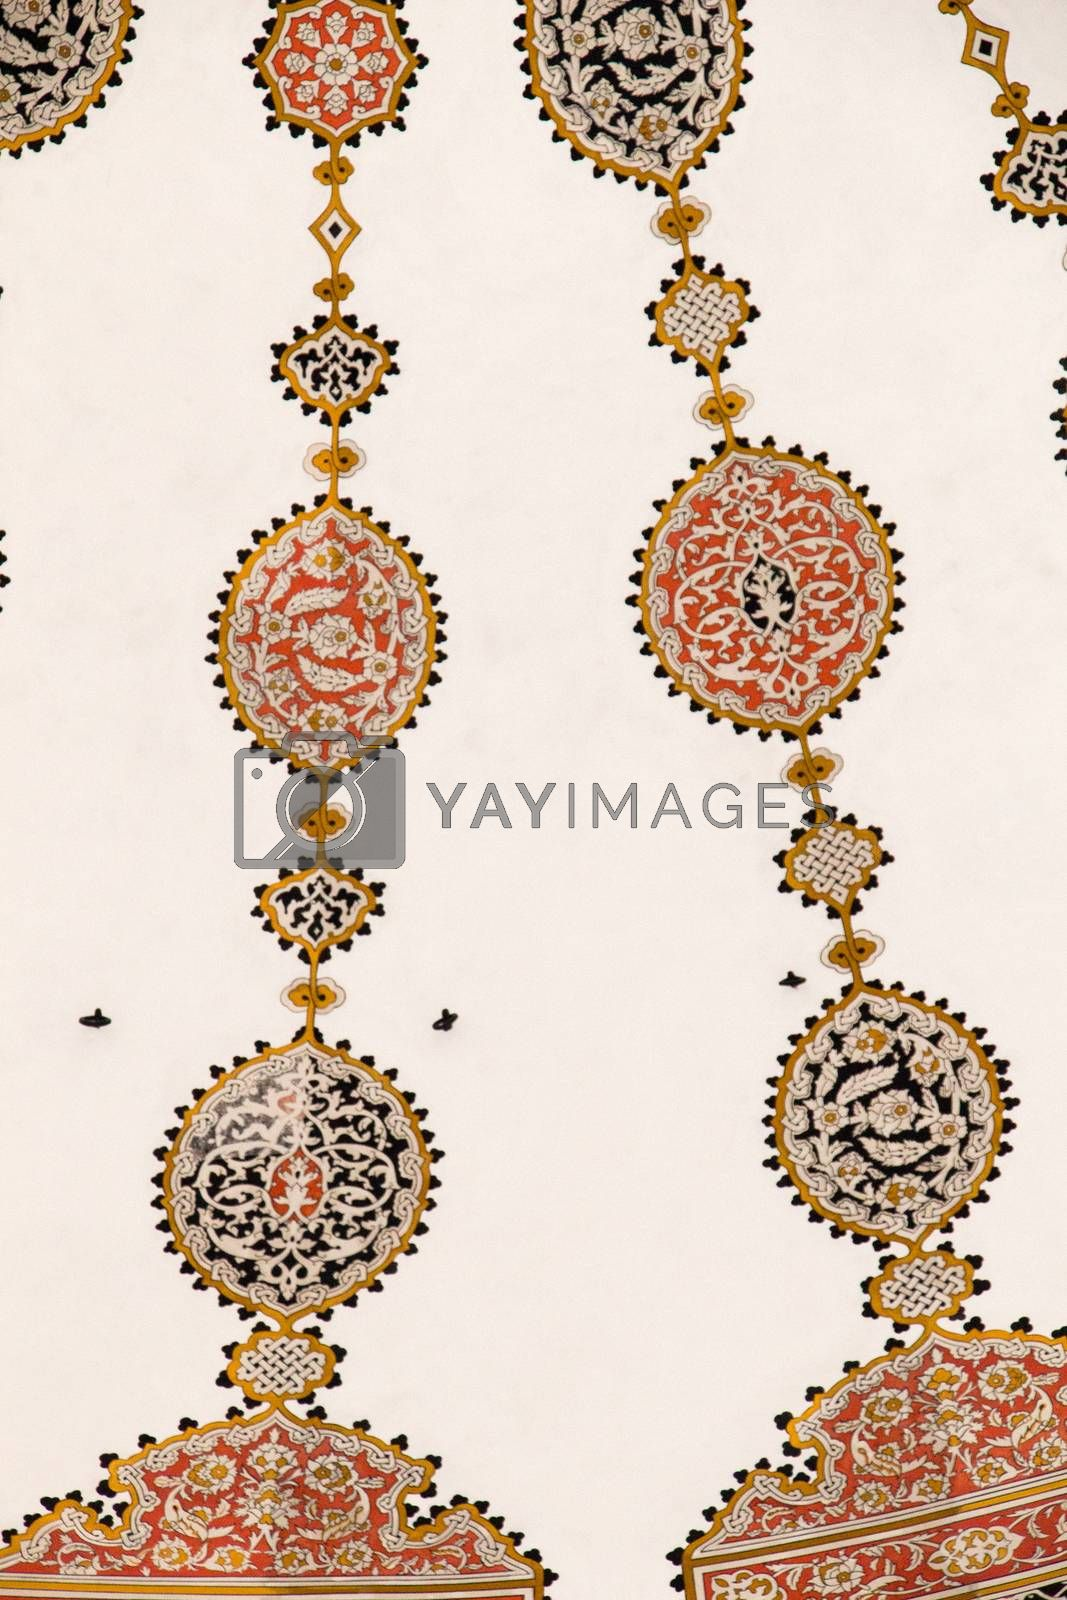 Floral art pattern example of the Ottoman time